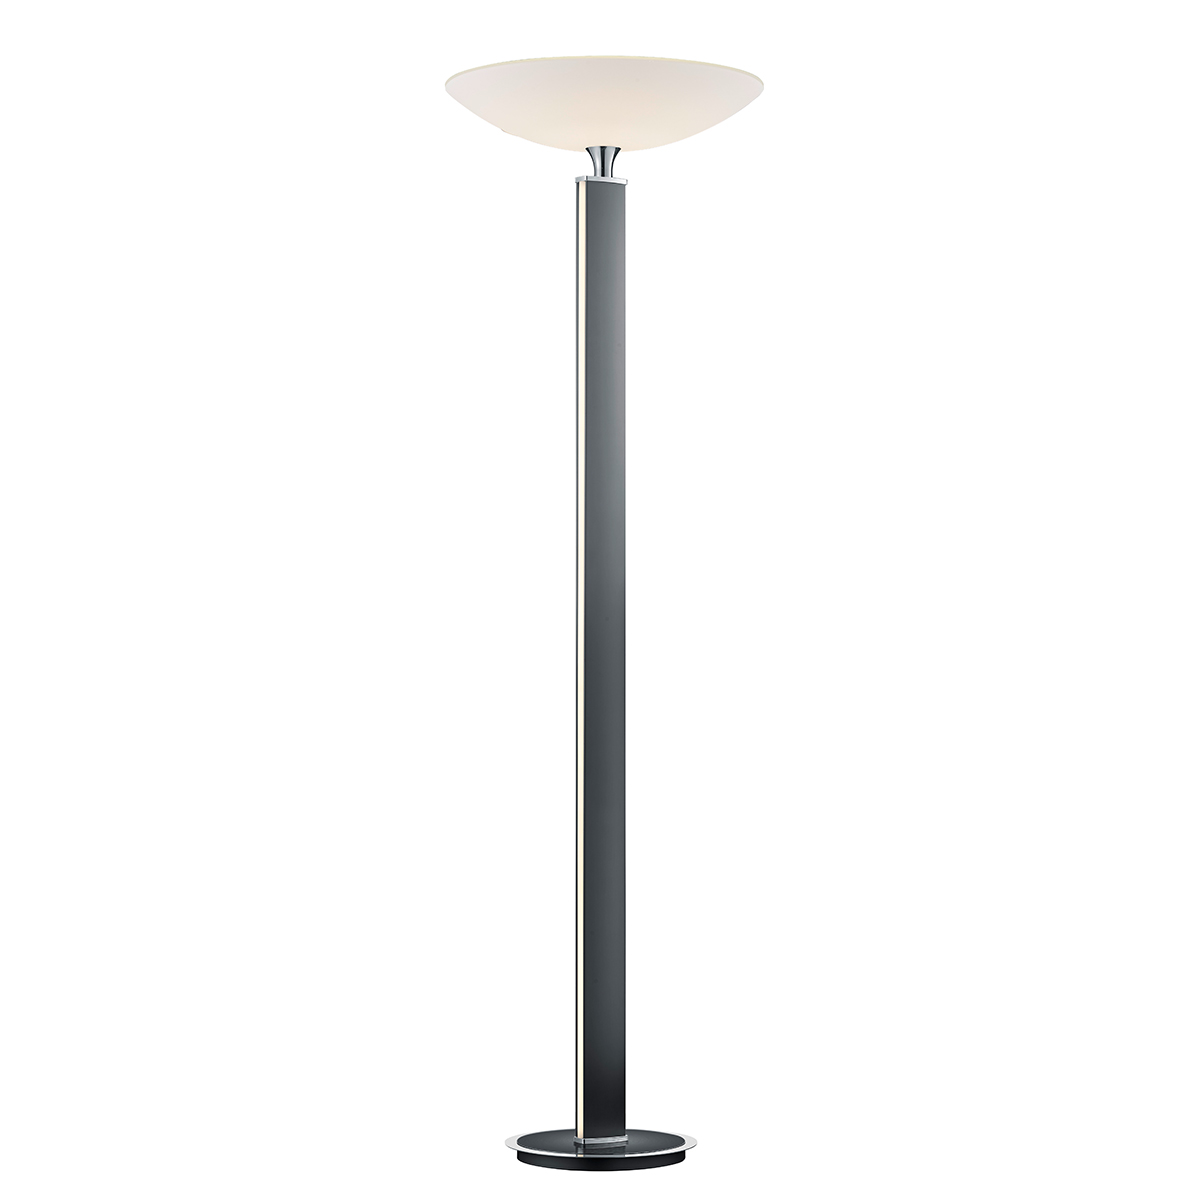 Bankamp Pure F LED Stehleuchte 6084/1-39